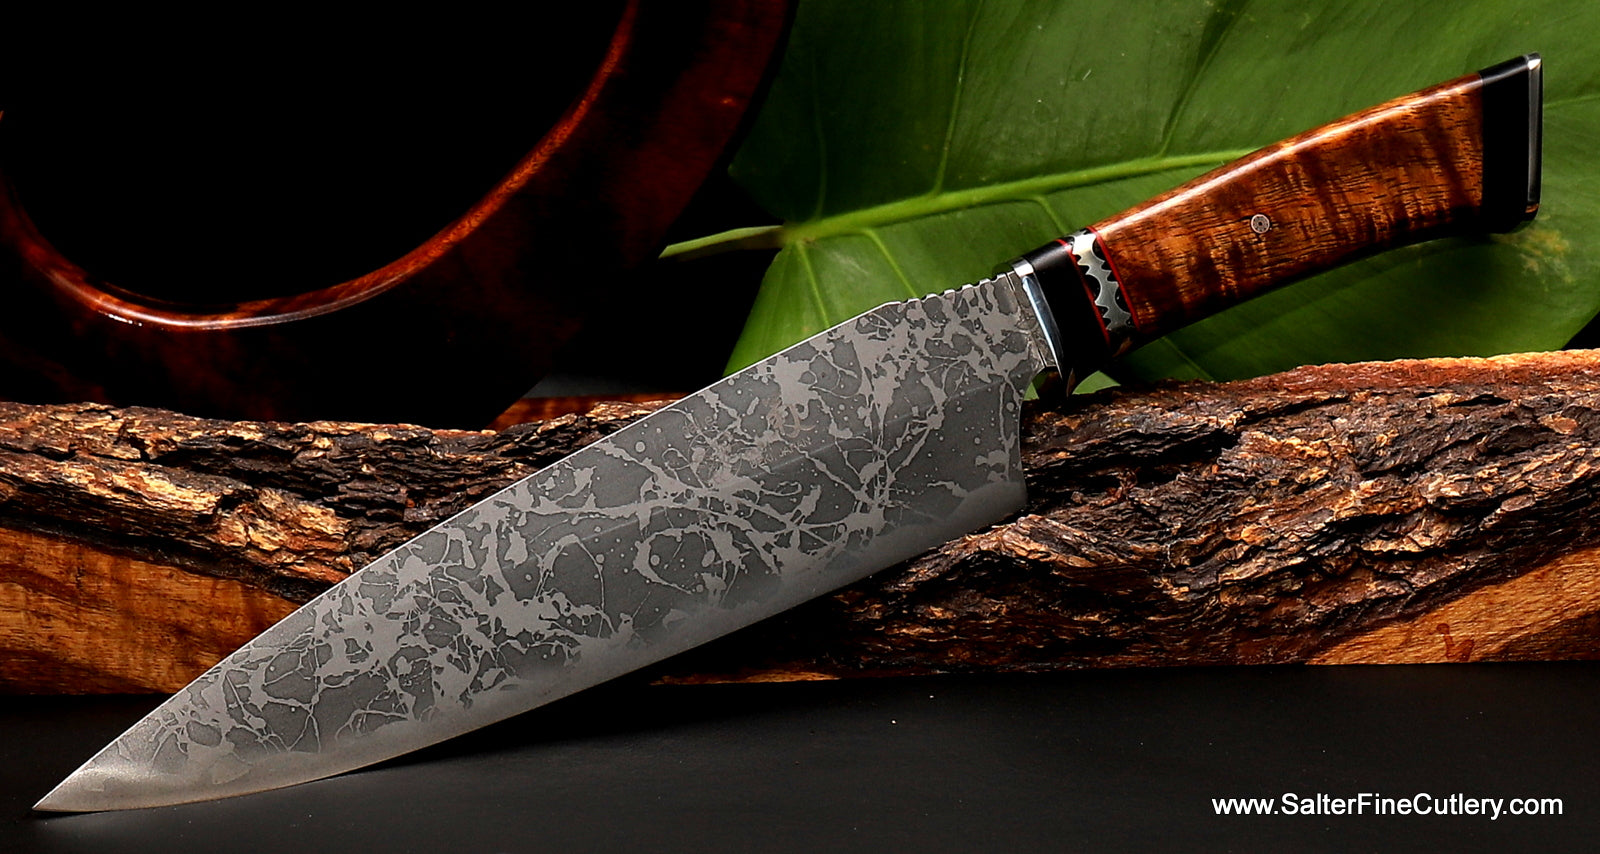 MkII Limited Edition Collectible Knife from Salter Fine Cutlery of Hawaii